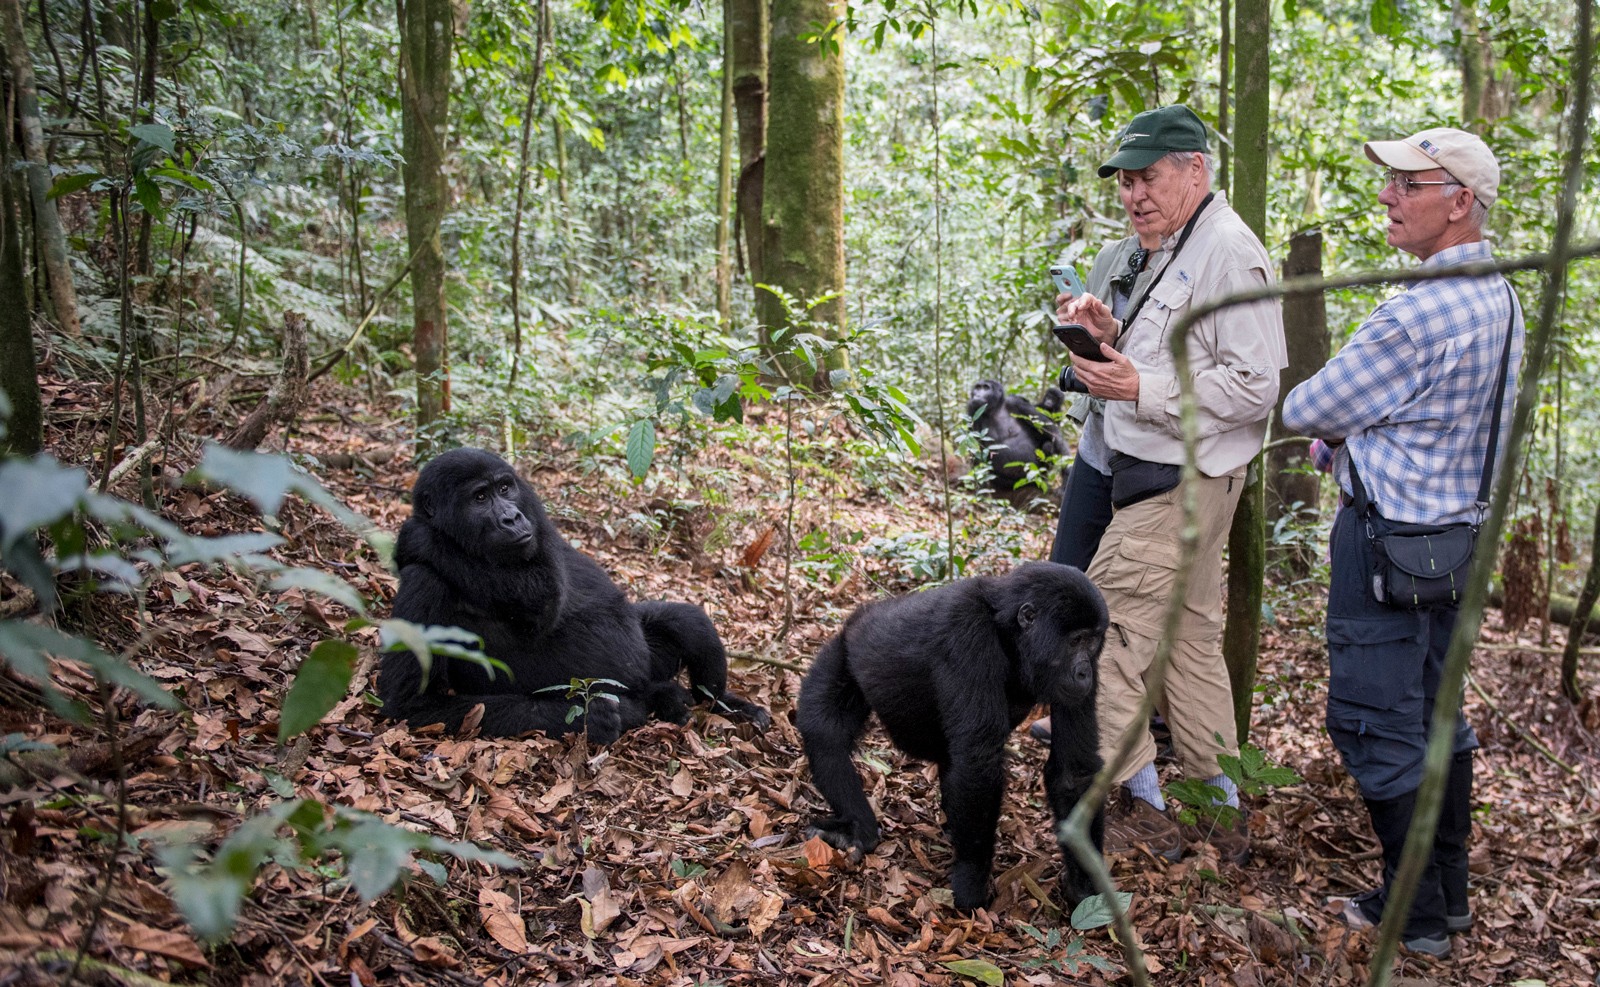 Three people standing with mountain gorillas in Bwindi in Uganda